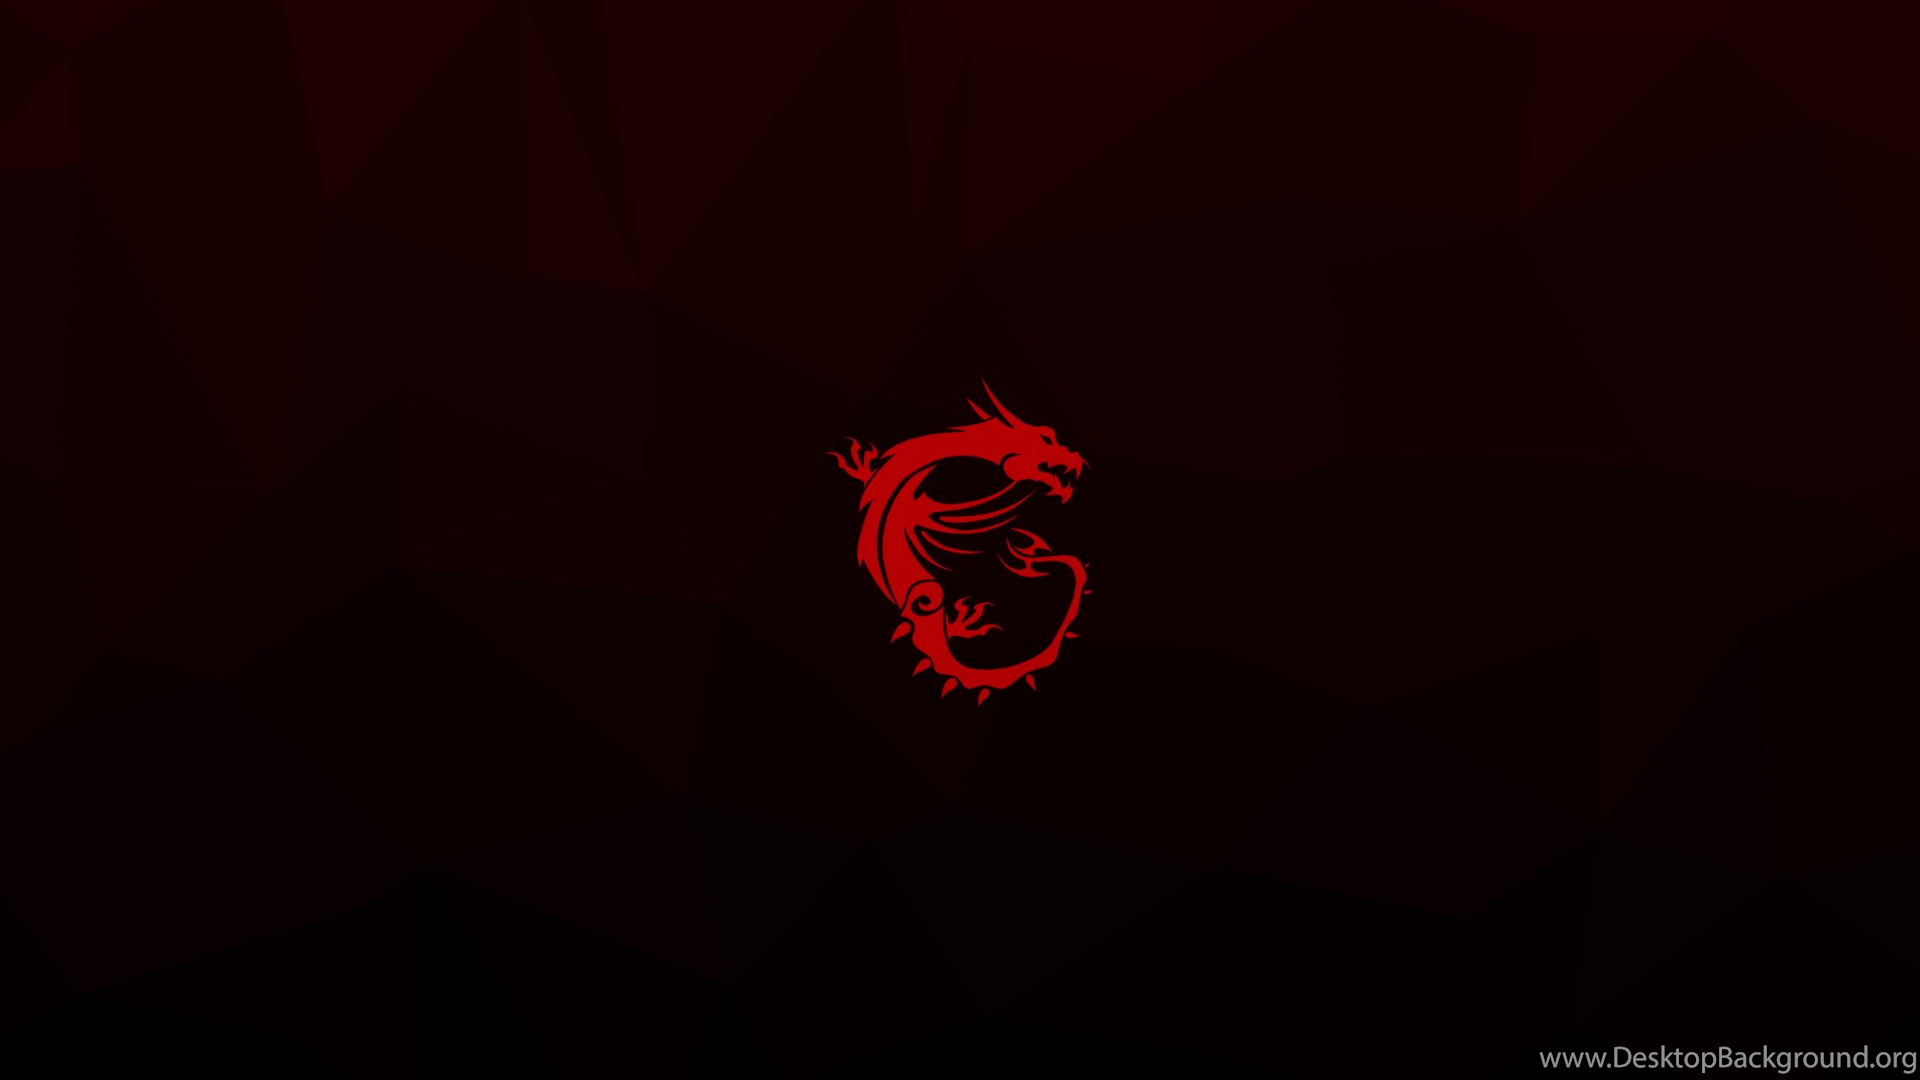 An Improved Msi Dragon Wallpapers Imgur Desktop Background